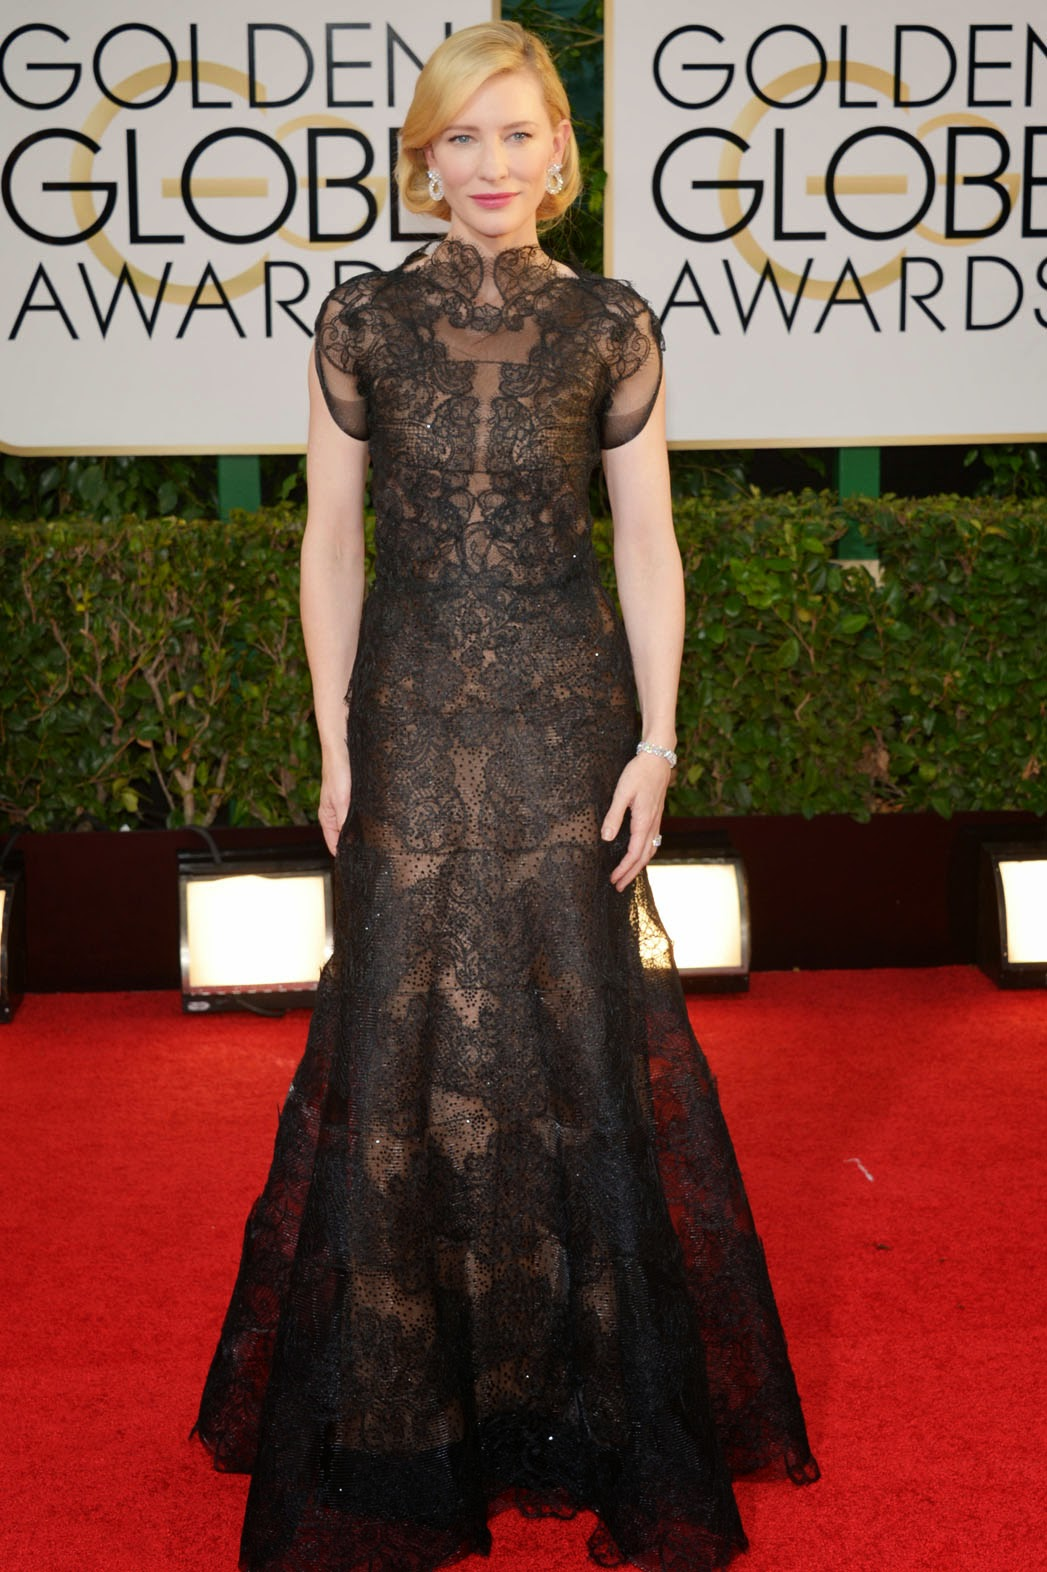 Cate Blanchett in a modest black lace gown with cap sleeves by Armani Privé